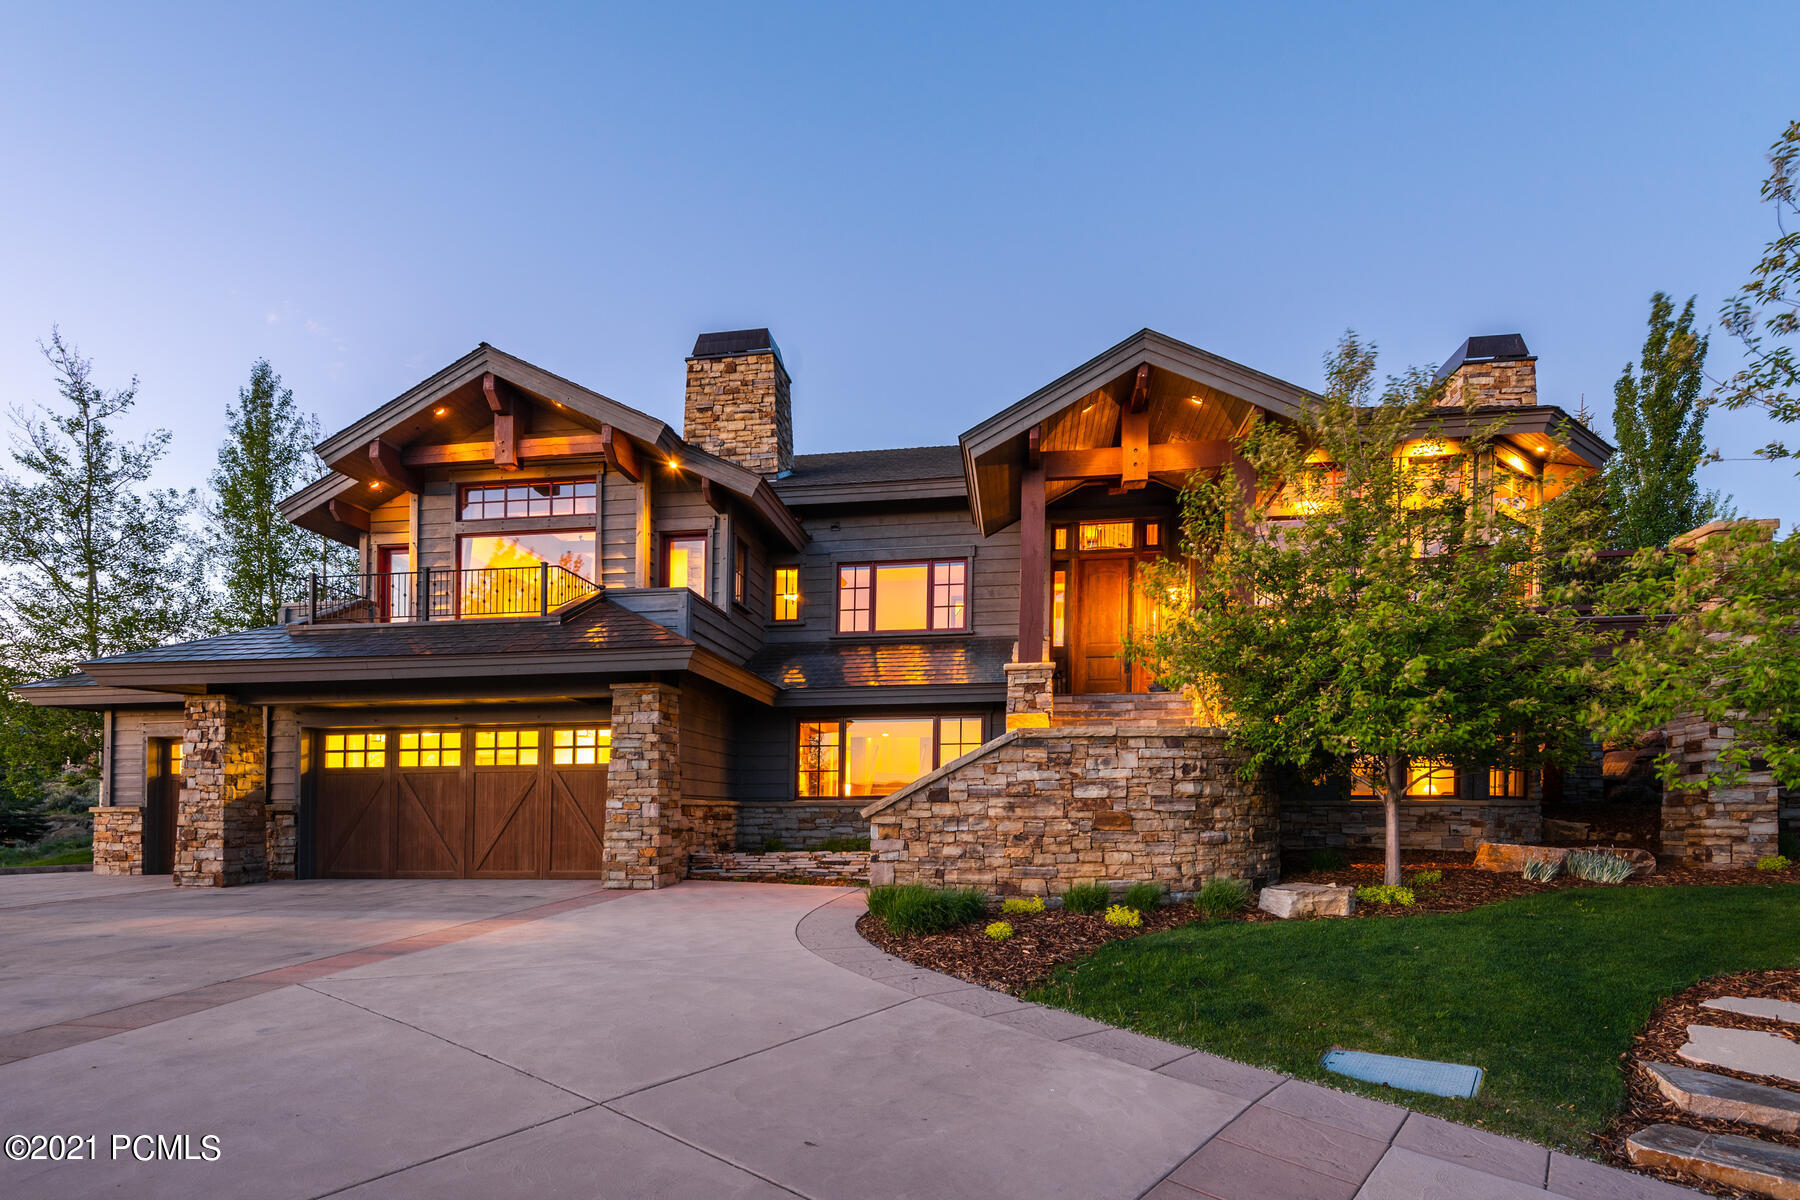 Beautiful mountain contemporary home in the Wapiti Canyon neighborhood situated on a quiet cul-de-sac with commanding views of the entire Wasatch back. The timeless design by renowned architect Otto-Walker takes advantage of the views, open space, and privacy that this home provides. Very well appointed with 3 levels, 6 bedrooms plus office, 6 baths, steam showers, radiant heat throughout, and heated driveway. Family room and gaming area with fully-equipped wet bar make for a great place for family gatherings and entertaining. Enjoy the expansive outdoor living spaces with wraparound decking and rear patio/entertaining area with built-in barbecue, fire pit and hot tub all set up for year-round use with heated patio. Meticulous care and maintenance have gone into this wonderful family retreat. Full golf membership is available for purchase with this property through a private transaction with Promontory Club, bypassing the waiting list.